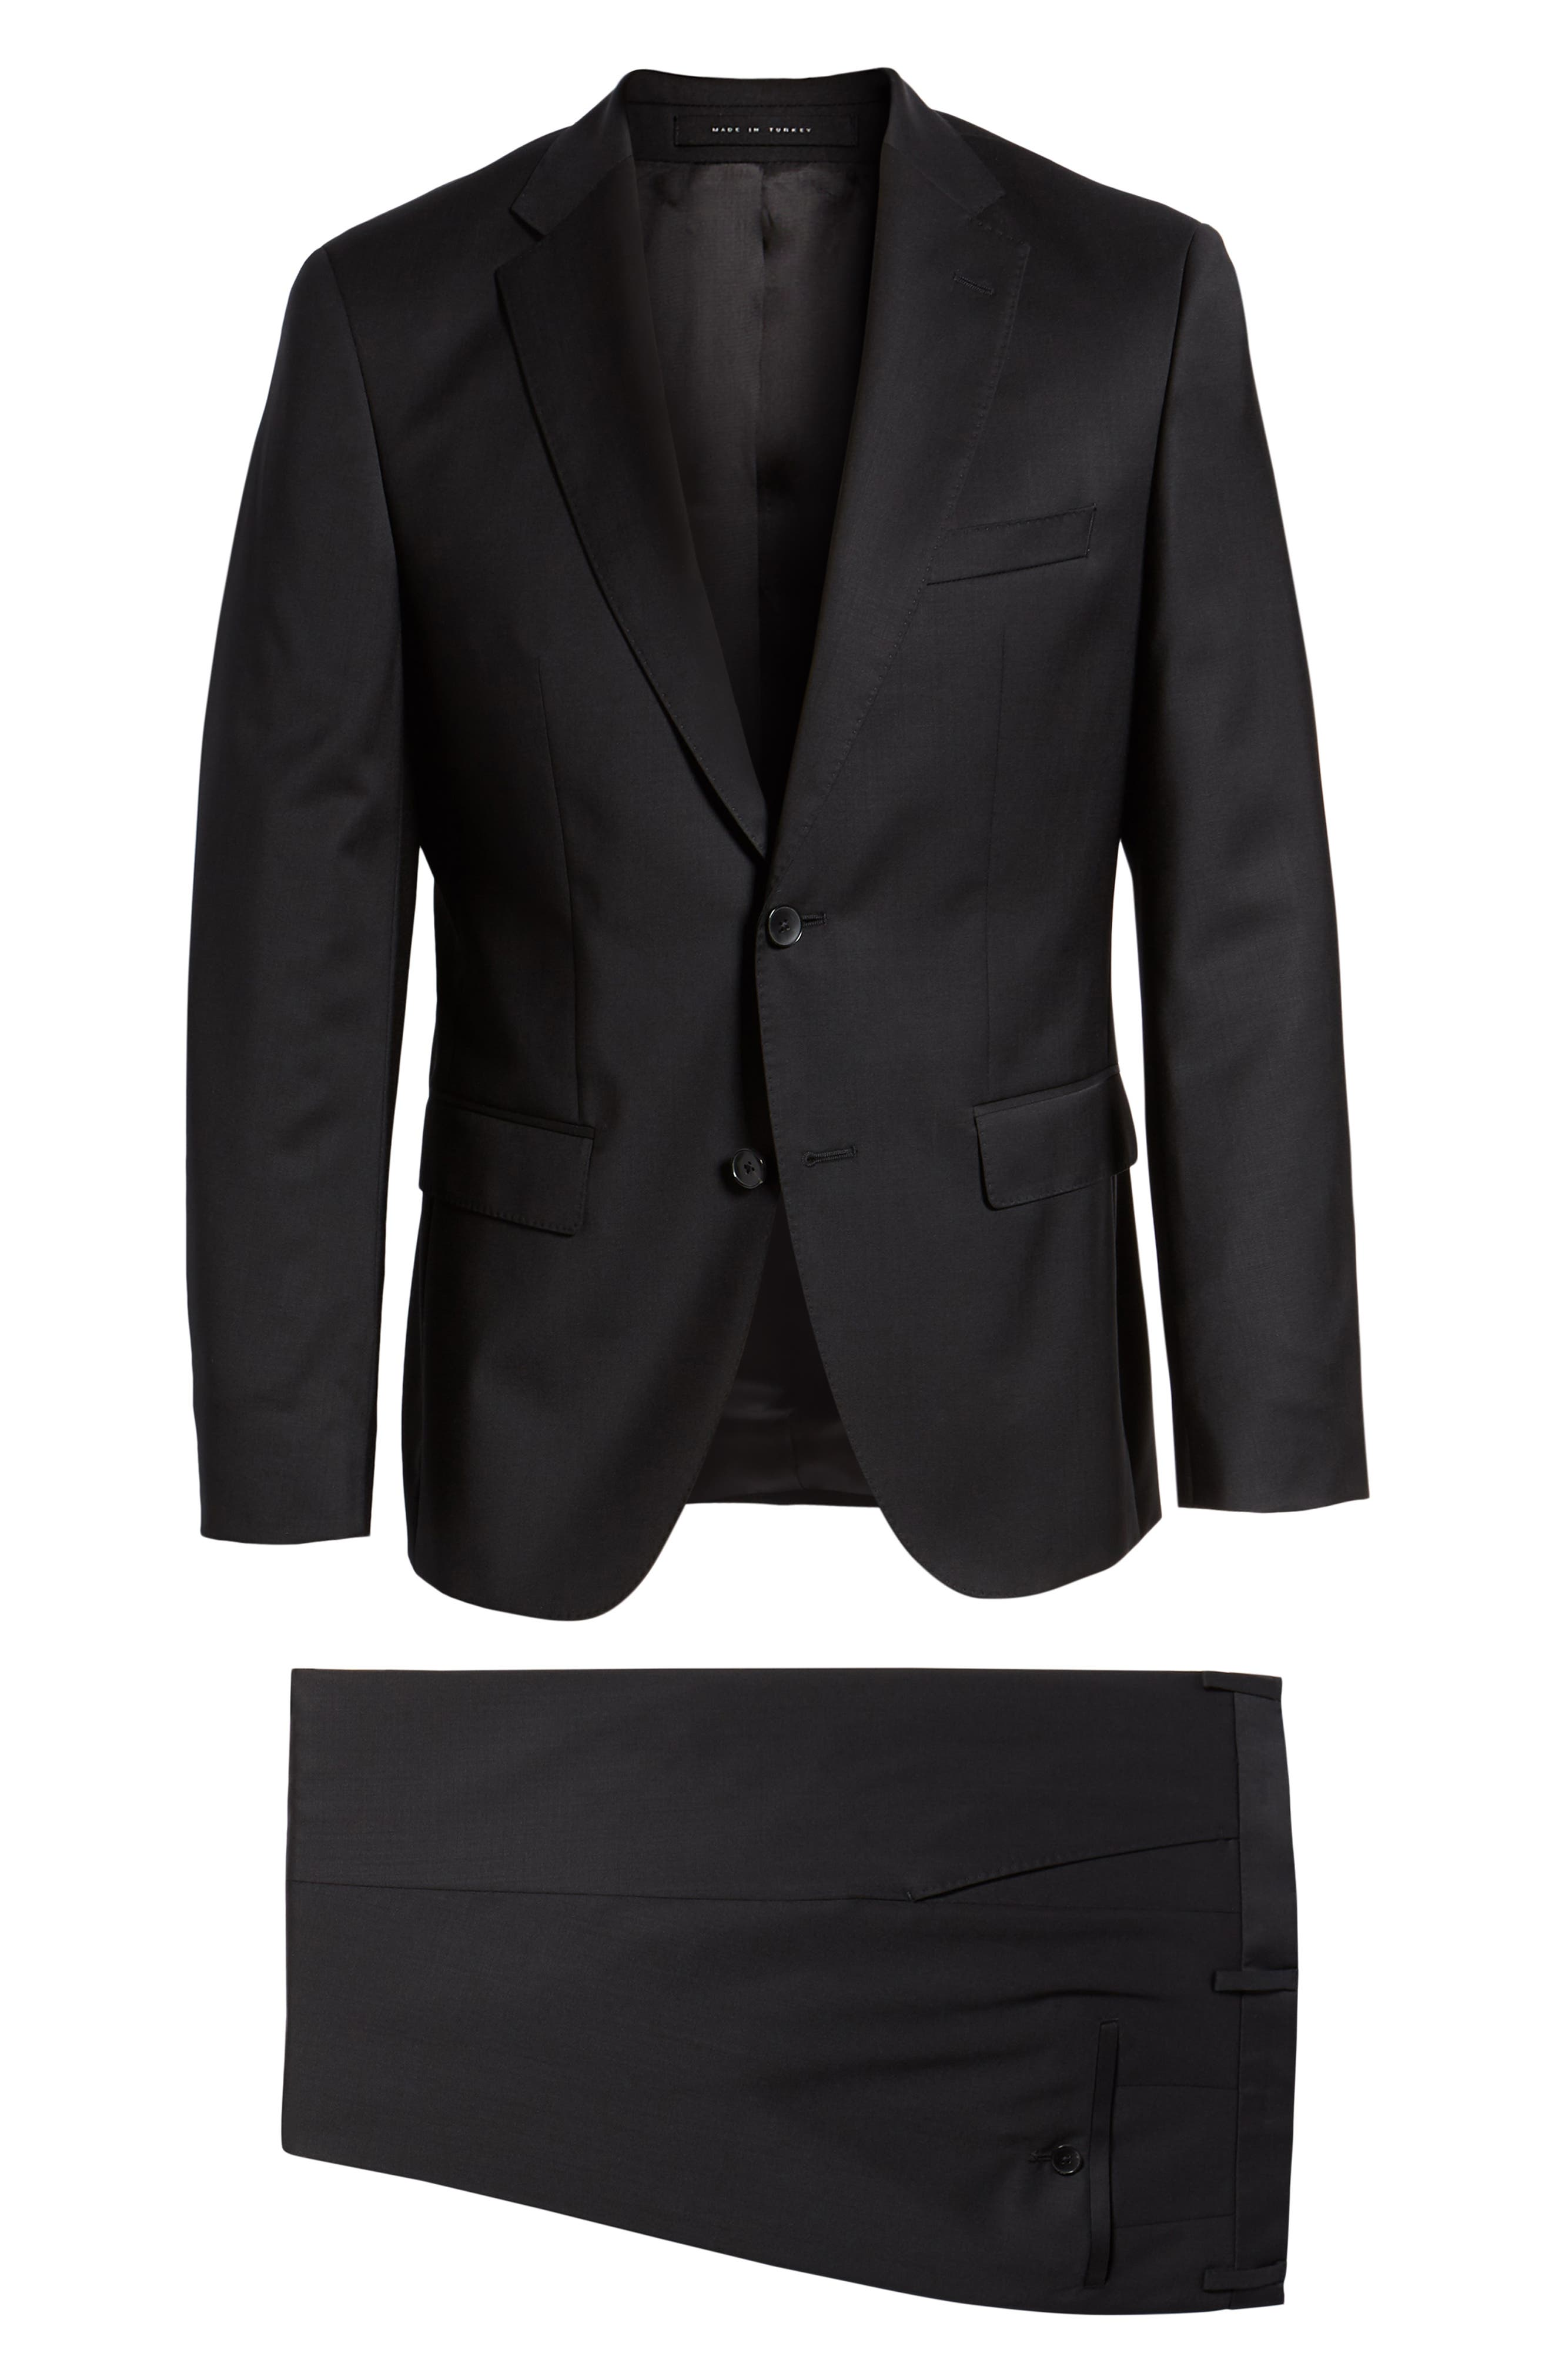 Johnstons/Lenon Classic Fit Solid Wool Suit,                             Alternate thumbnail 8, color,                             BLACK